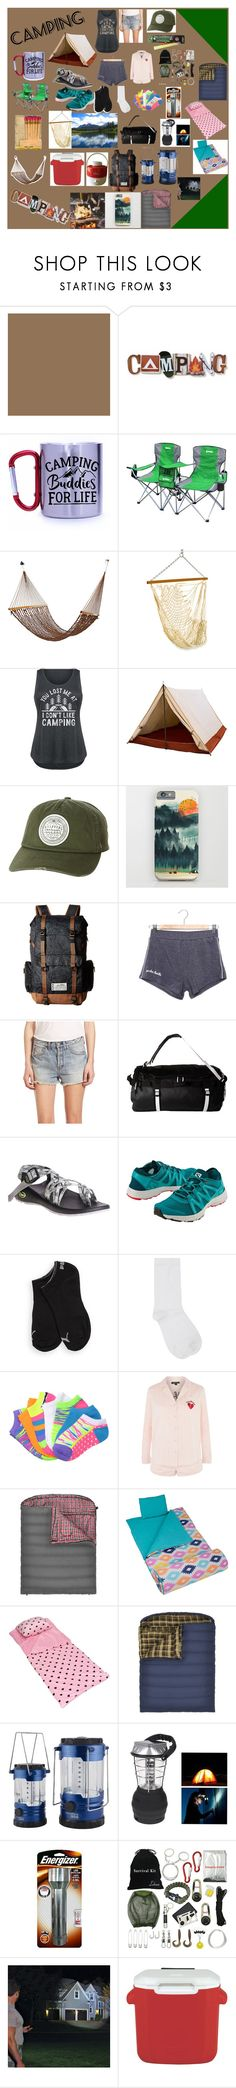 """""""Camping"""" by mikahelaine ❤ liked on Polyvore featuring Thos. Baker, Billabong, Kavu, Free People, The North Face, Chaco, Title Nine, Puma, M&Co and Everlast"""